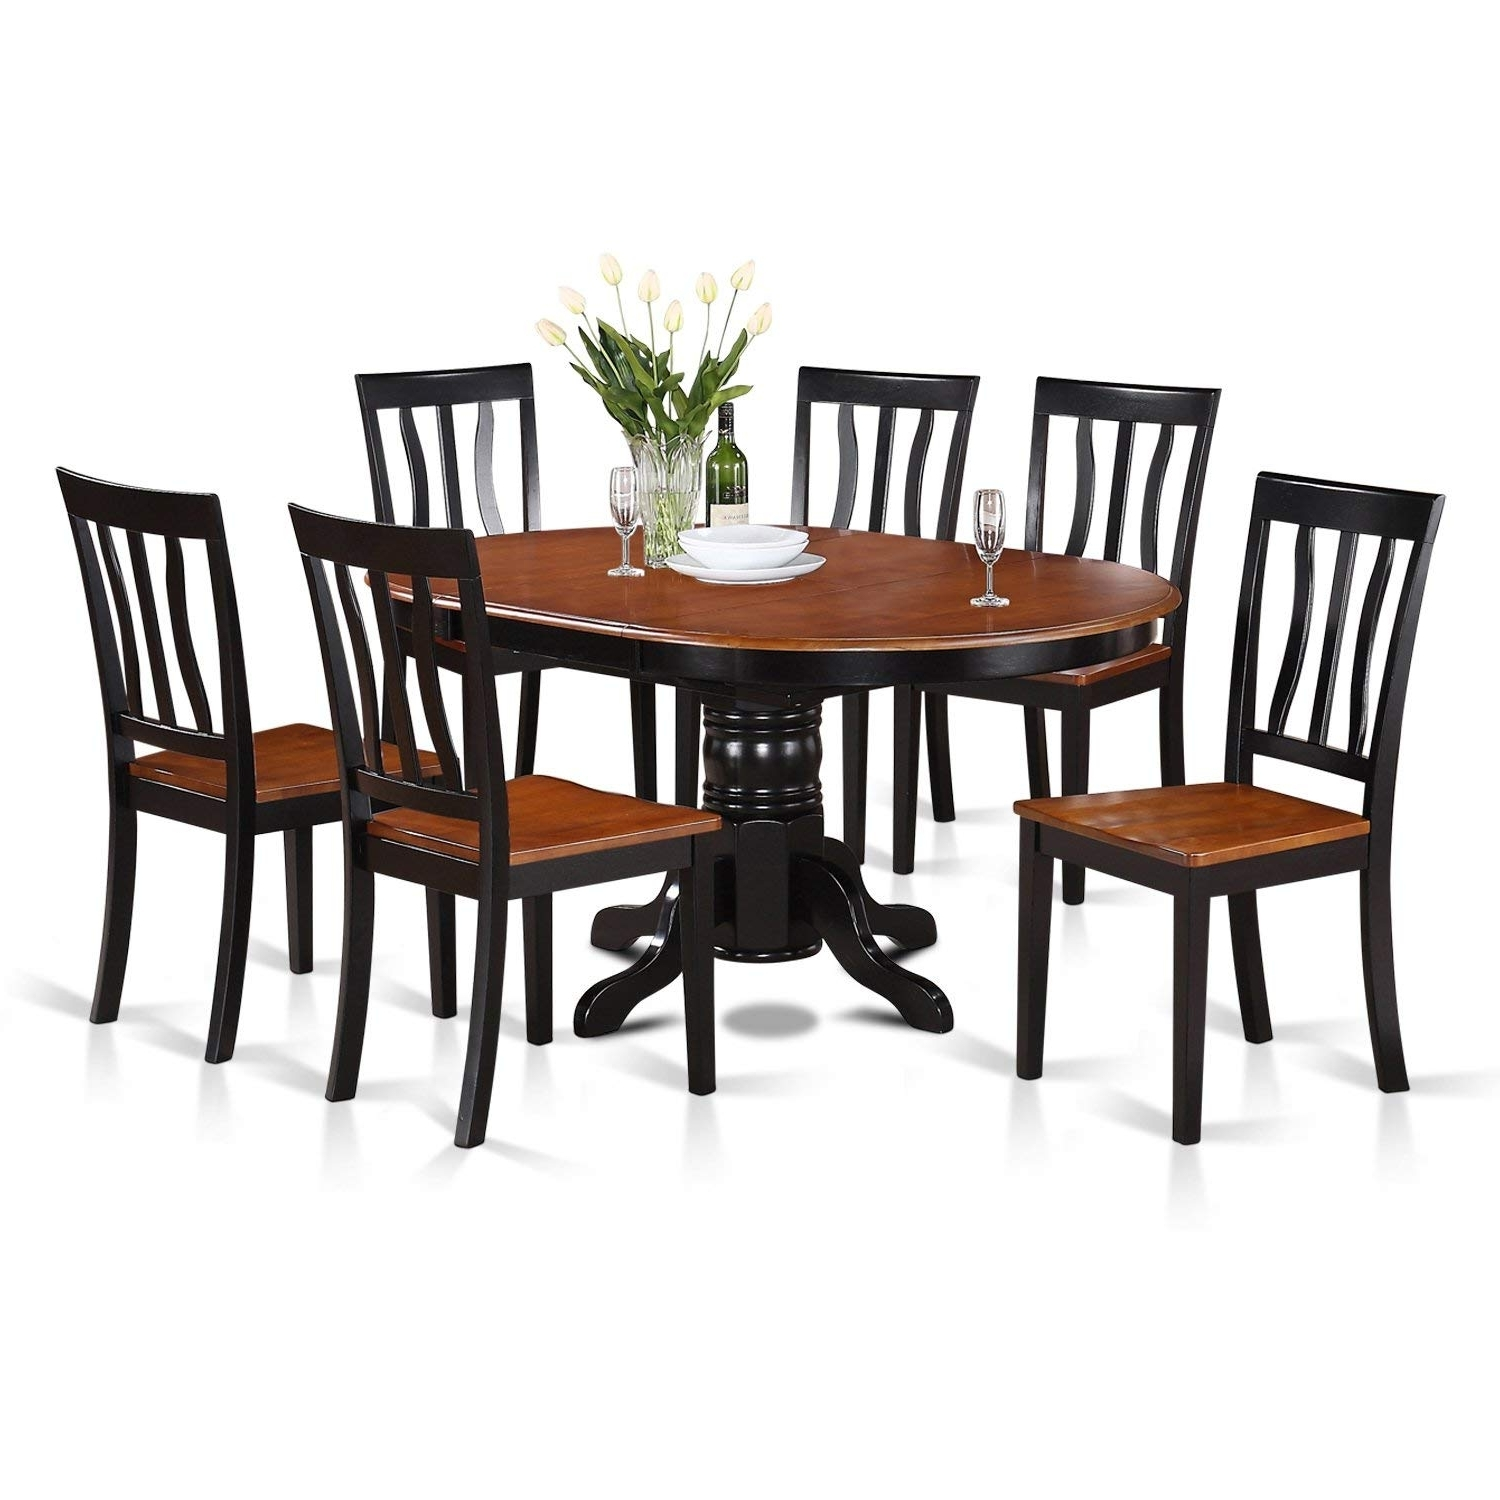 Jaxon Grey 5 Piece Round Extension Dining Sets With Upholstered Chairs Throughout Famous Amazon: East West Furniture Avat7 Blk W 7 Piece Dining Table Set (View 5 of 25)